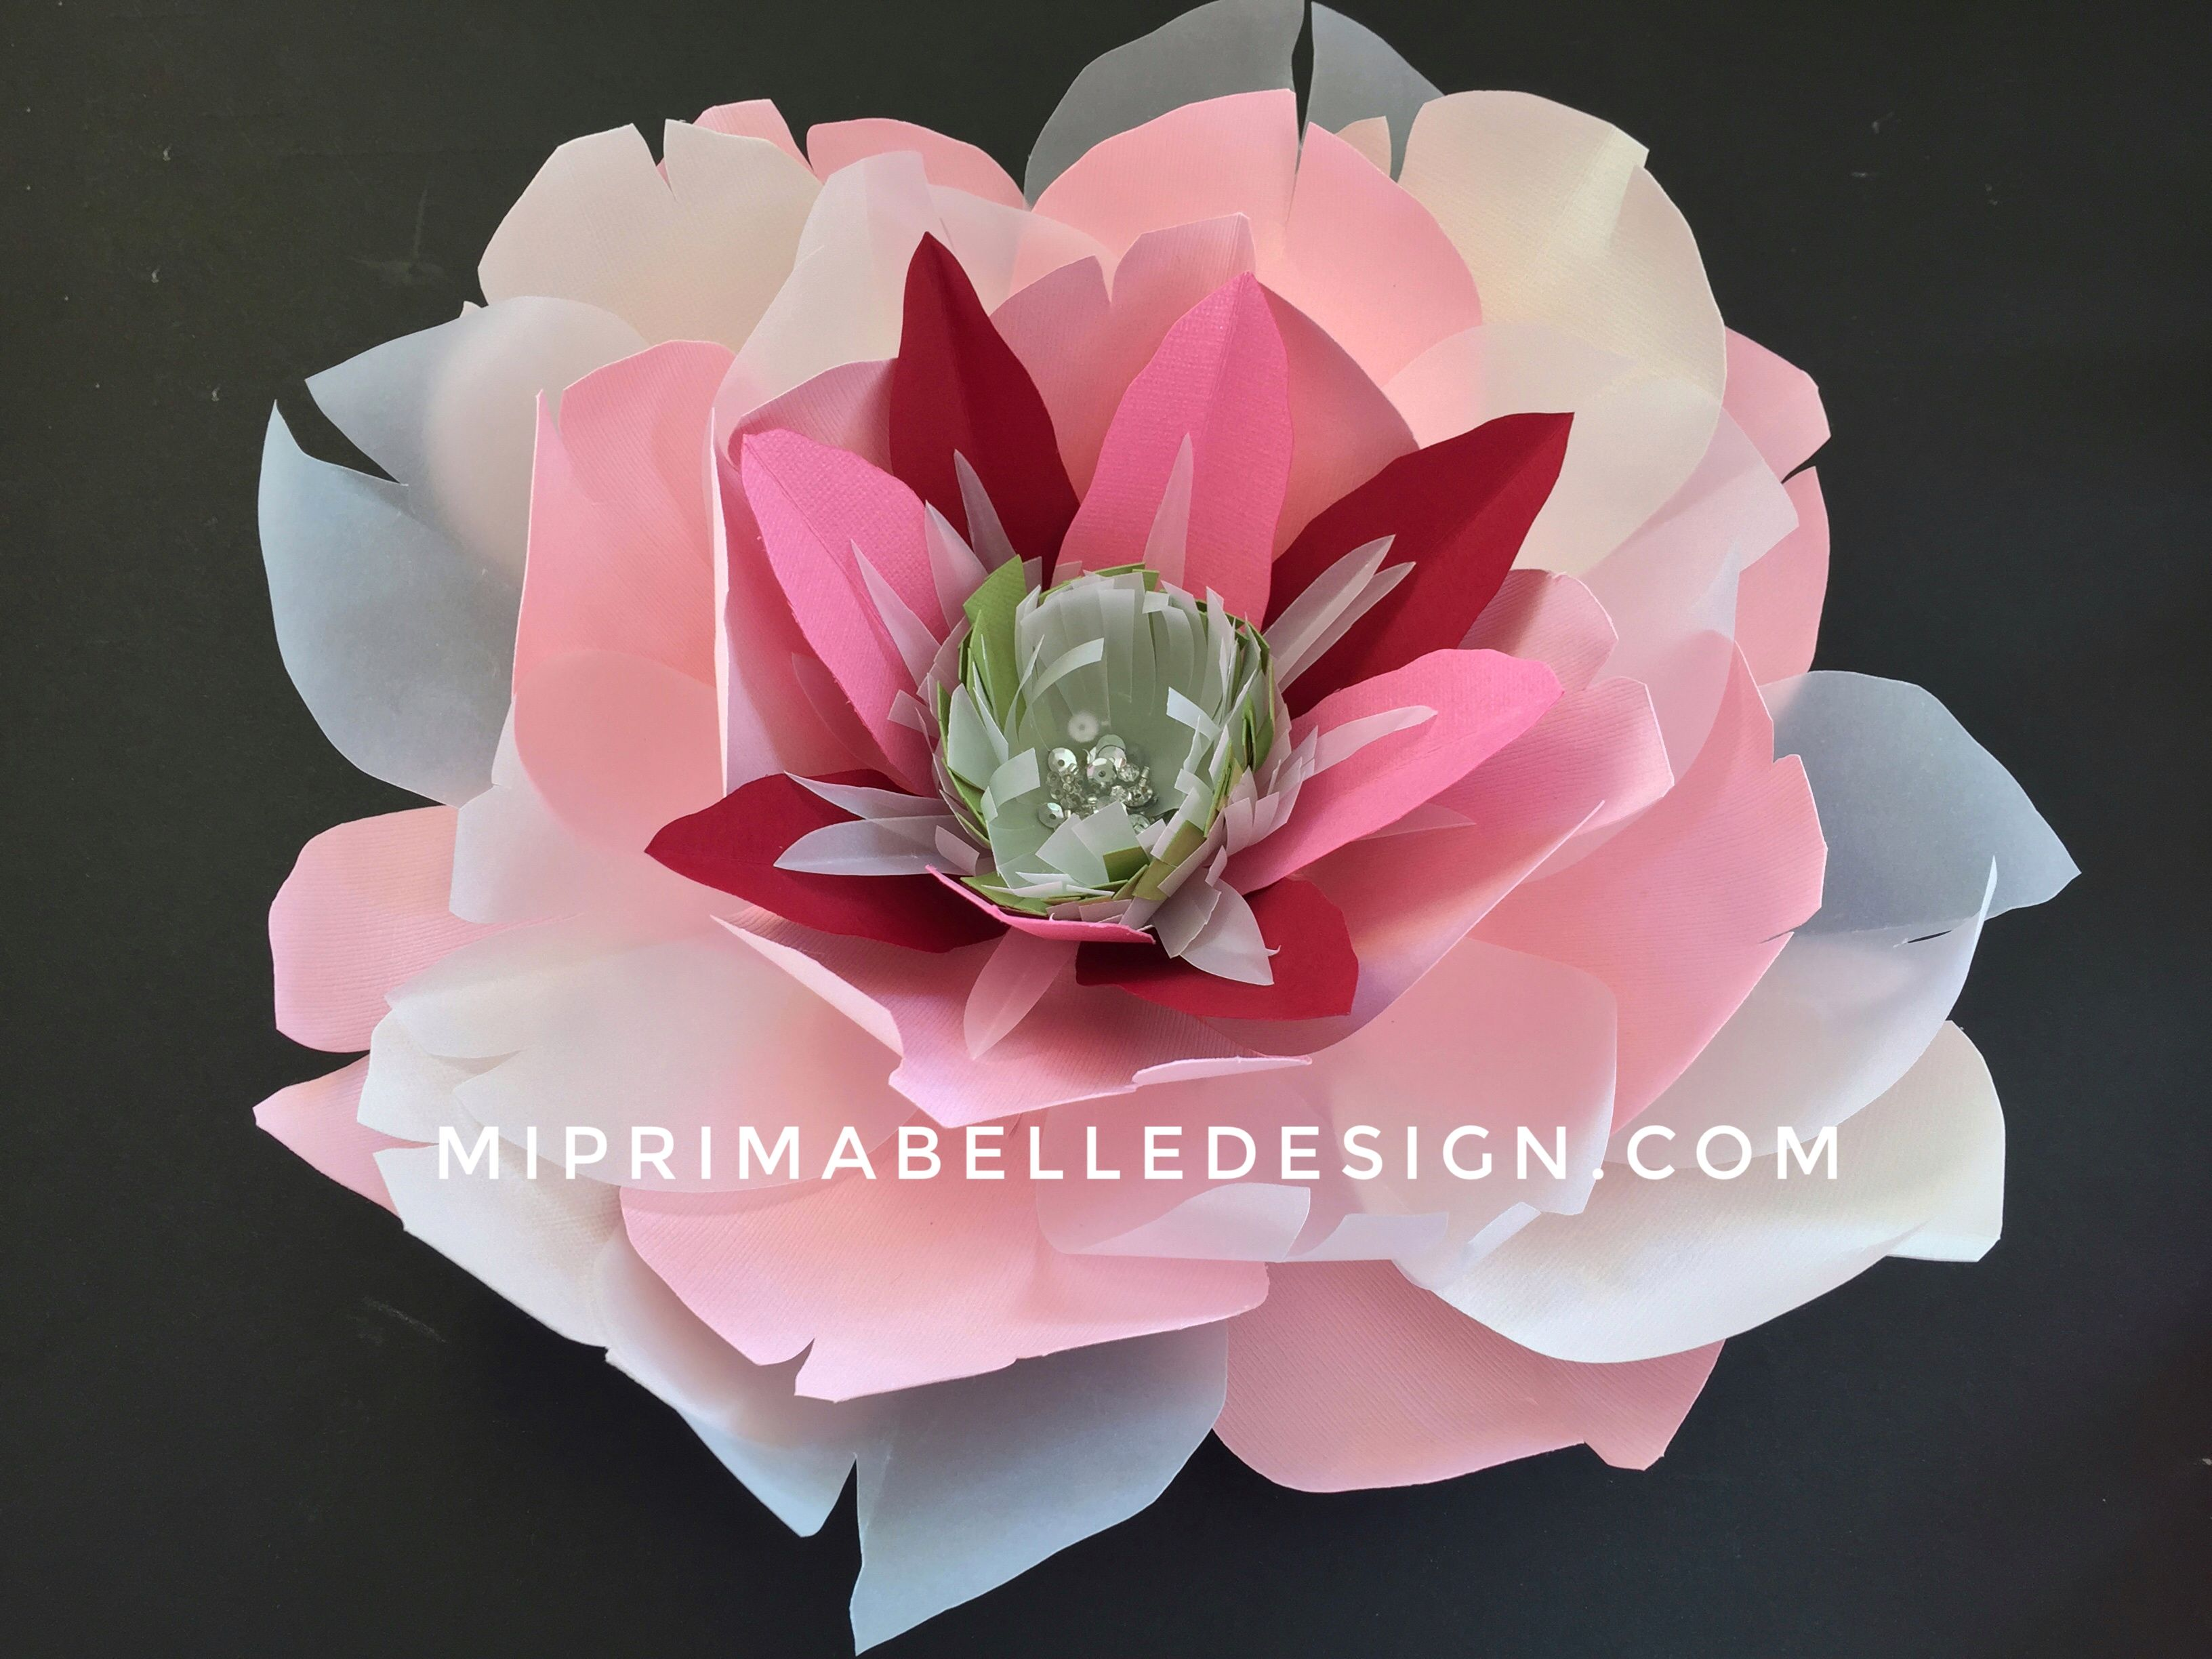 Large Paper Flowers For Baby Girls Nursery Room Decor Or For A